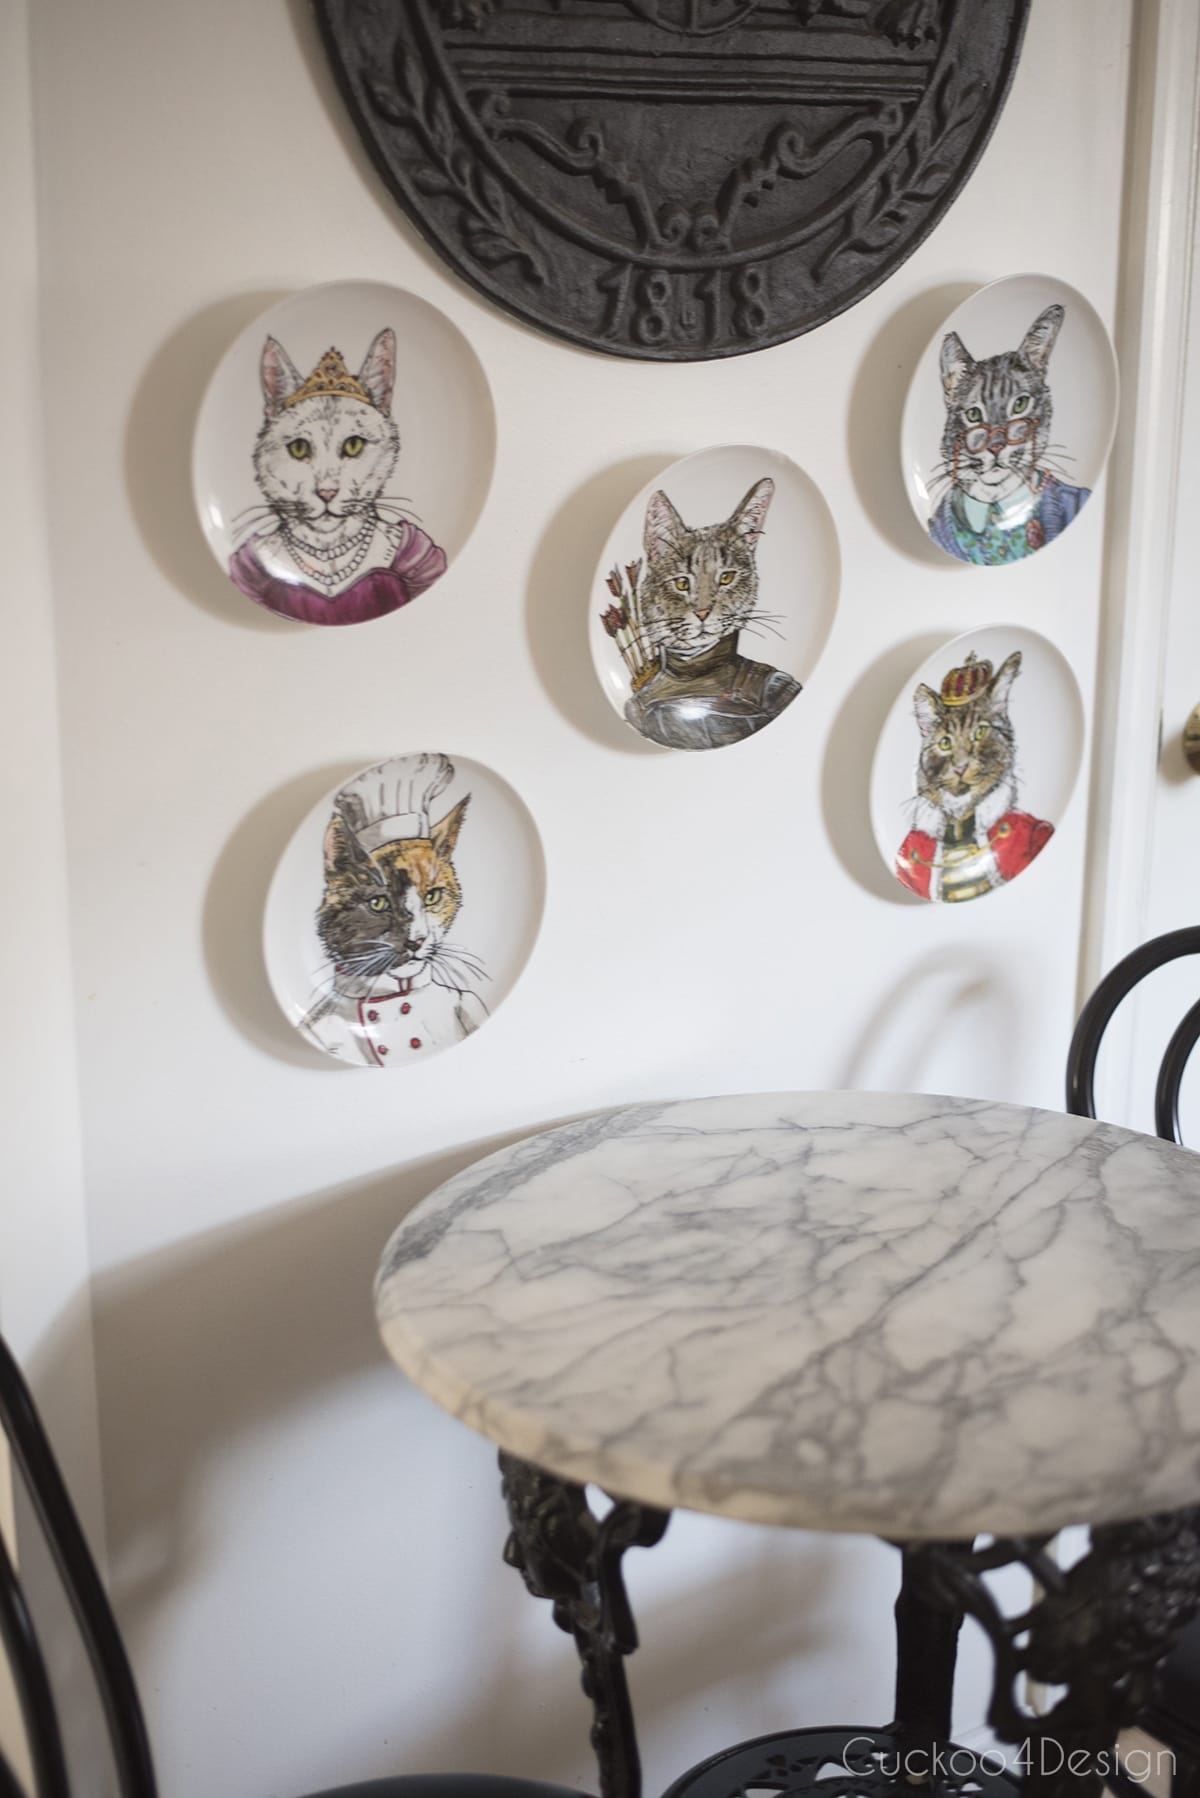 decorative animal plates above our vintage wrought iron and marble bistro table